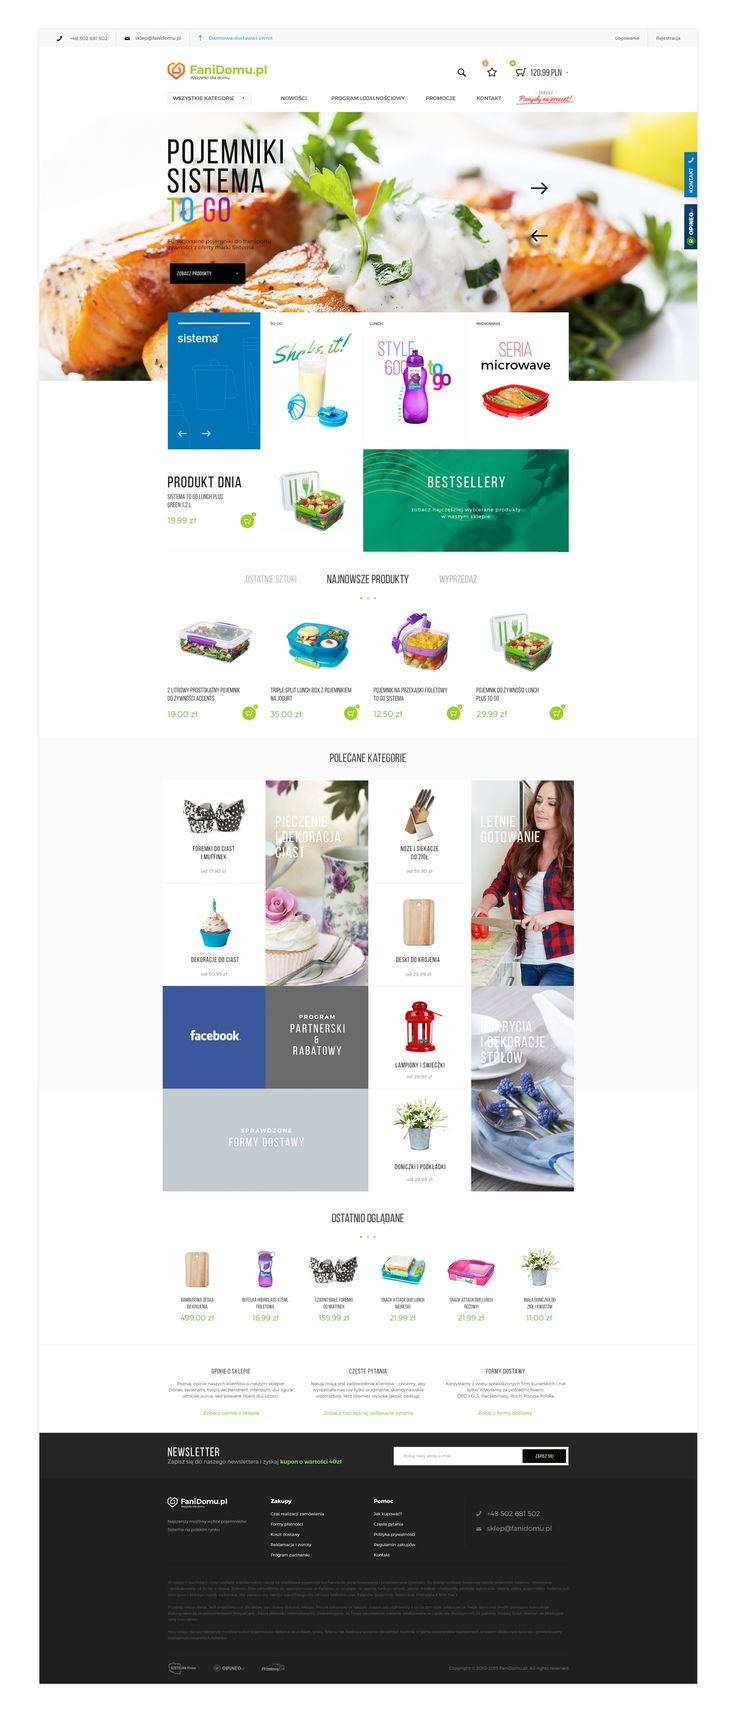 Food containers shop on Behance